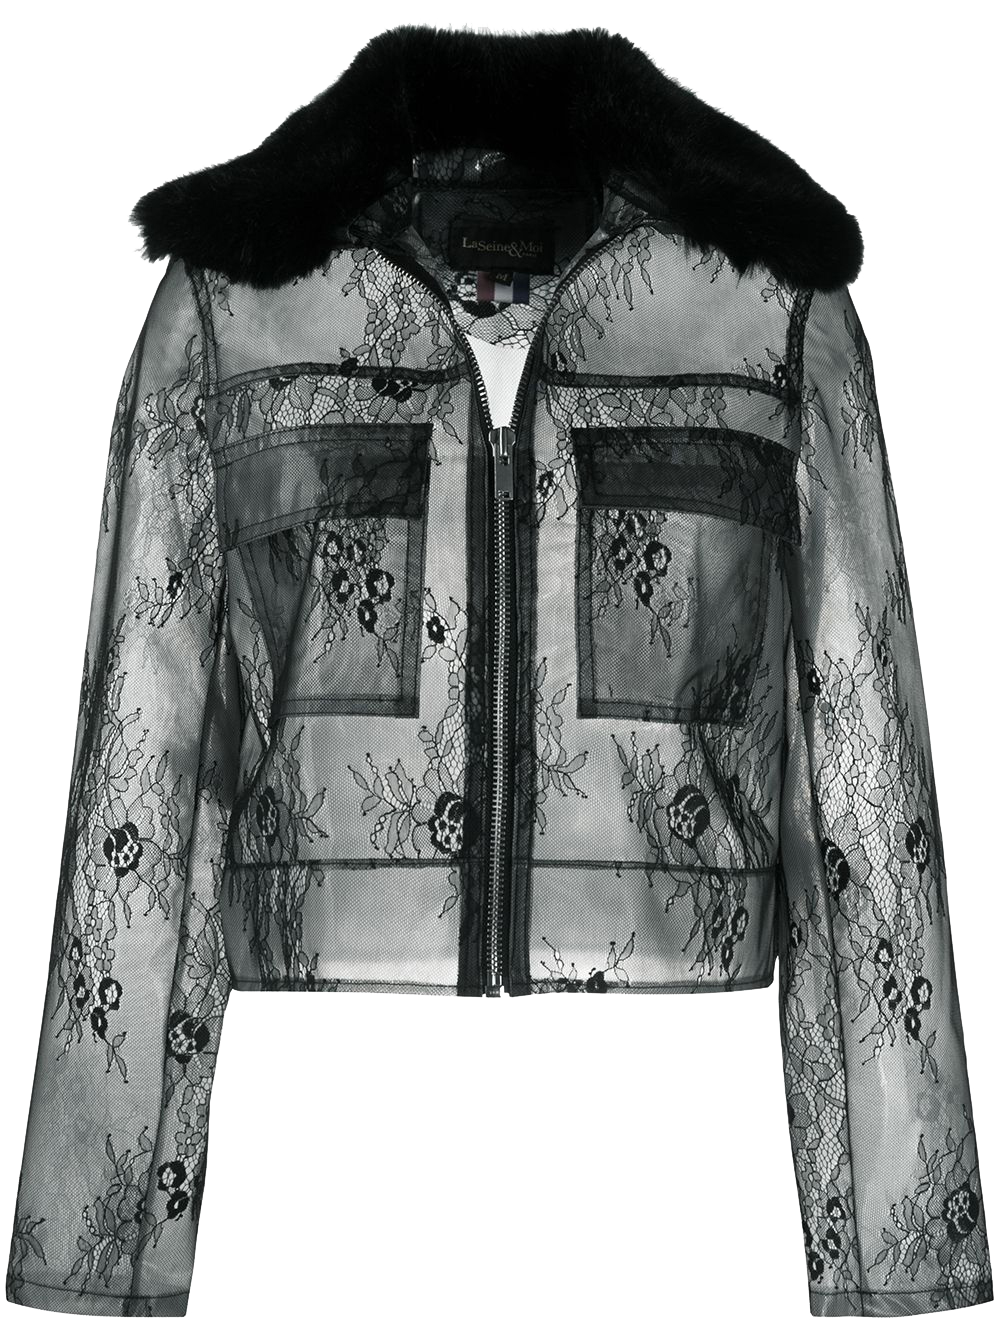 Ciceroni – monsoon accessories - monsoon accessories sale- Transparent Raincoat- transparent raincoat online -  Farfetch – Ajio – H and M – Good Earth - Ciceroni's Top Monsoon Gears for 2020 - Lace Transparent Raincoat by La Seine and Moi- Camouflage Print Raincoat by Ajio- Arctic Velocity Windcheater by Superdry- Indian Ocean Umbrella by Good Earth - Ginette Logo Boot by Moncler - DARSHA Highland Transparent Satchel by Ted Baker- Fleece-lined Rain Mittens by H & M